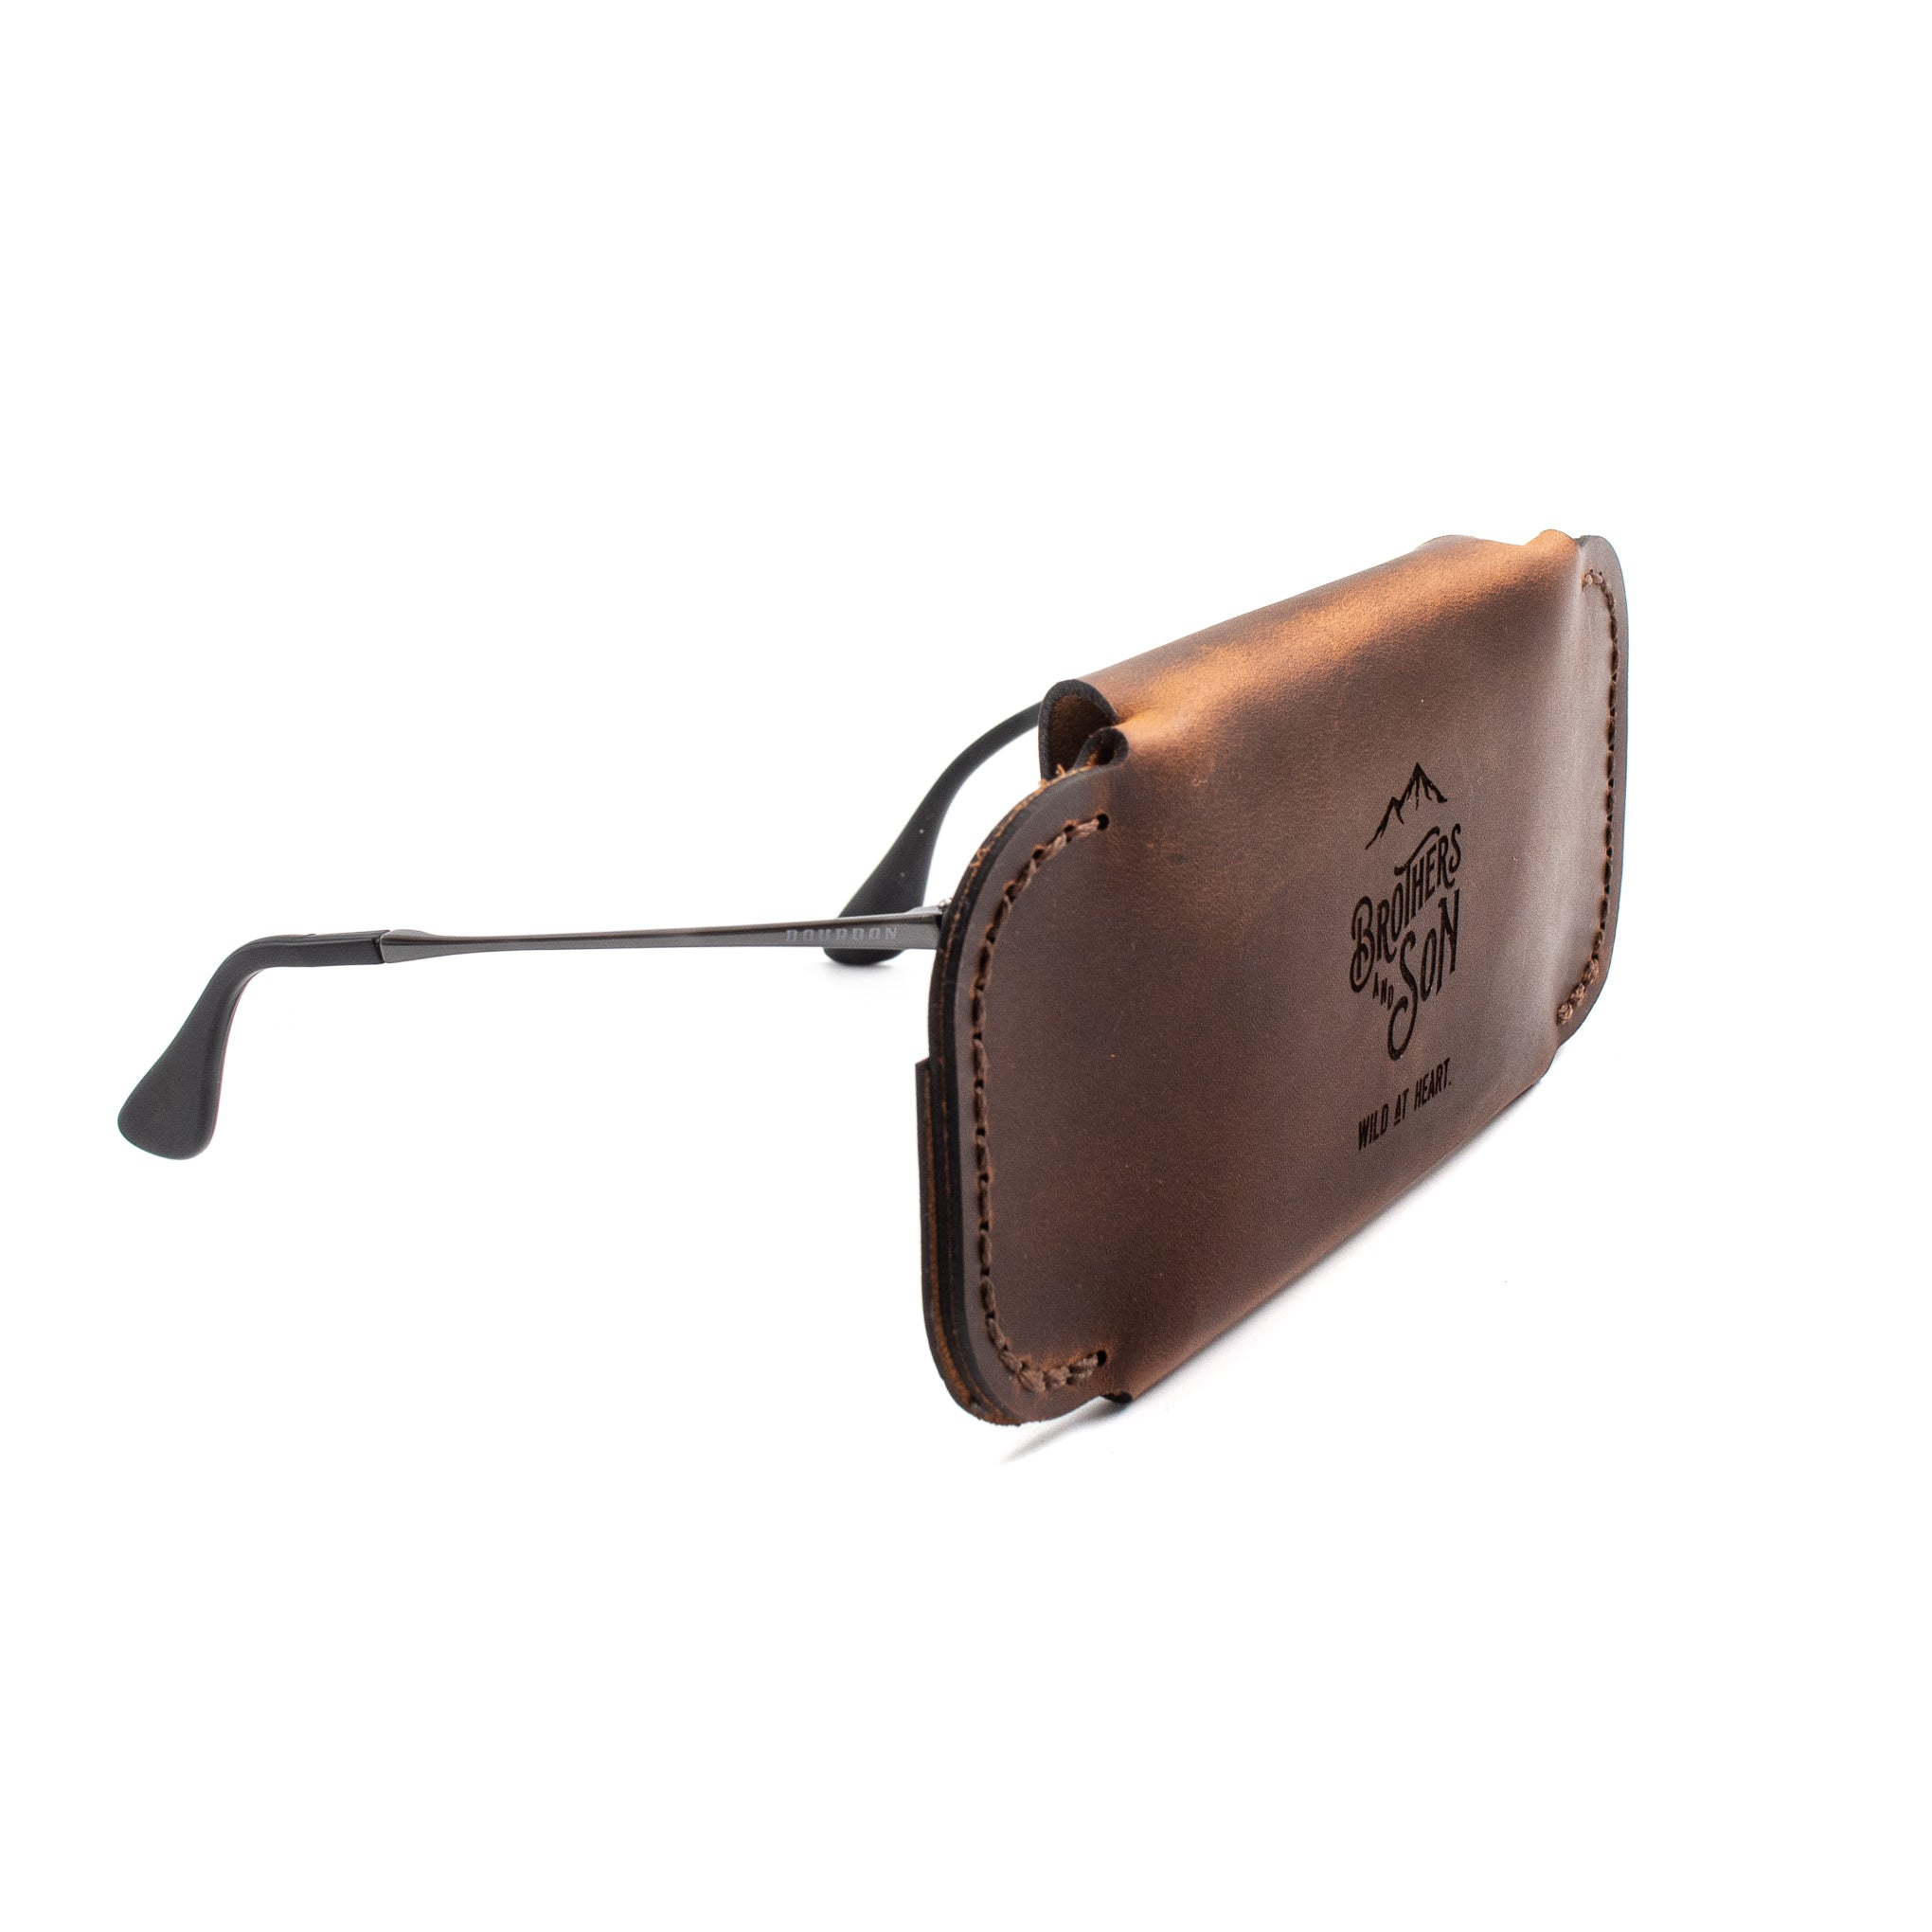 The Sunnies Case - Old Brown